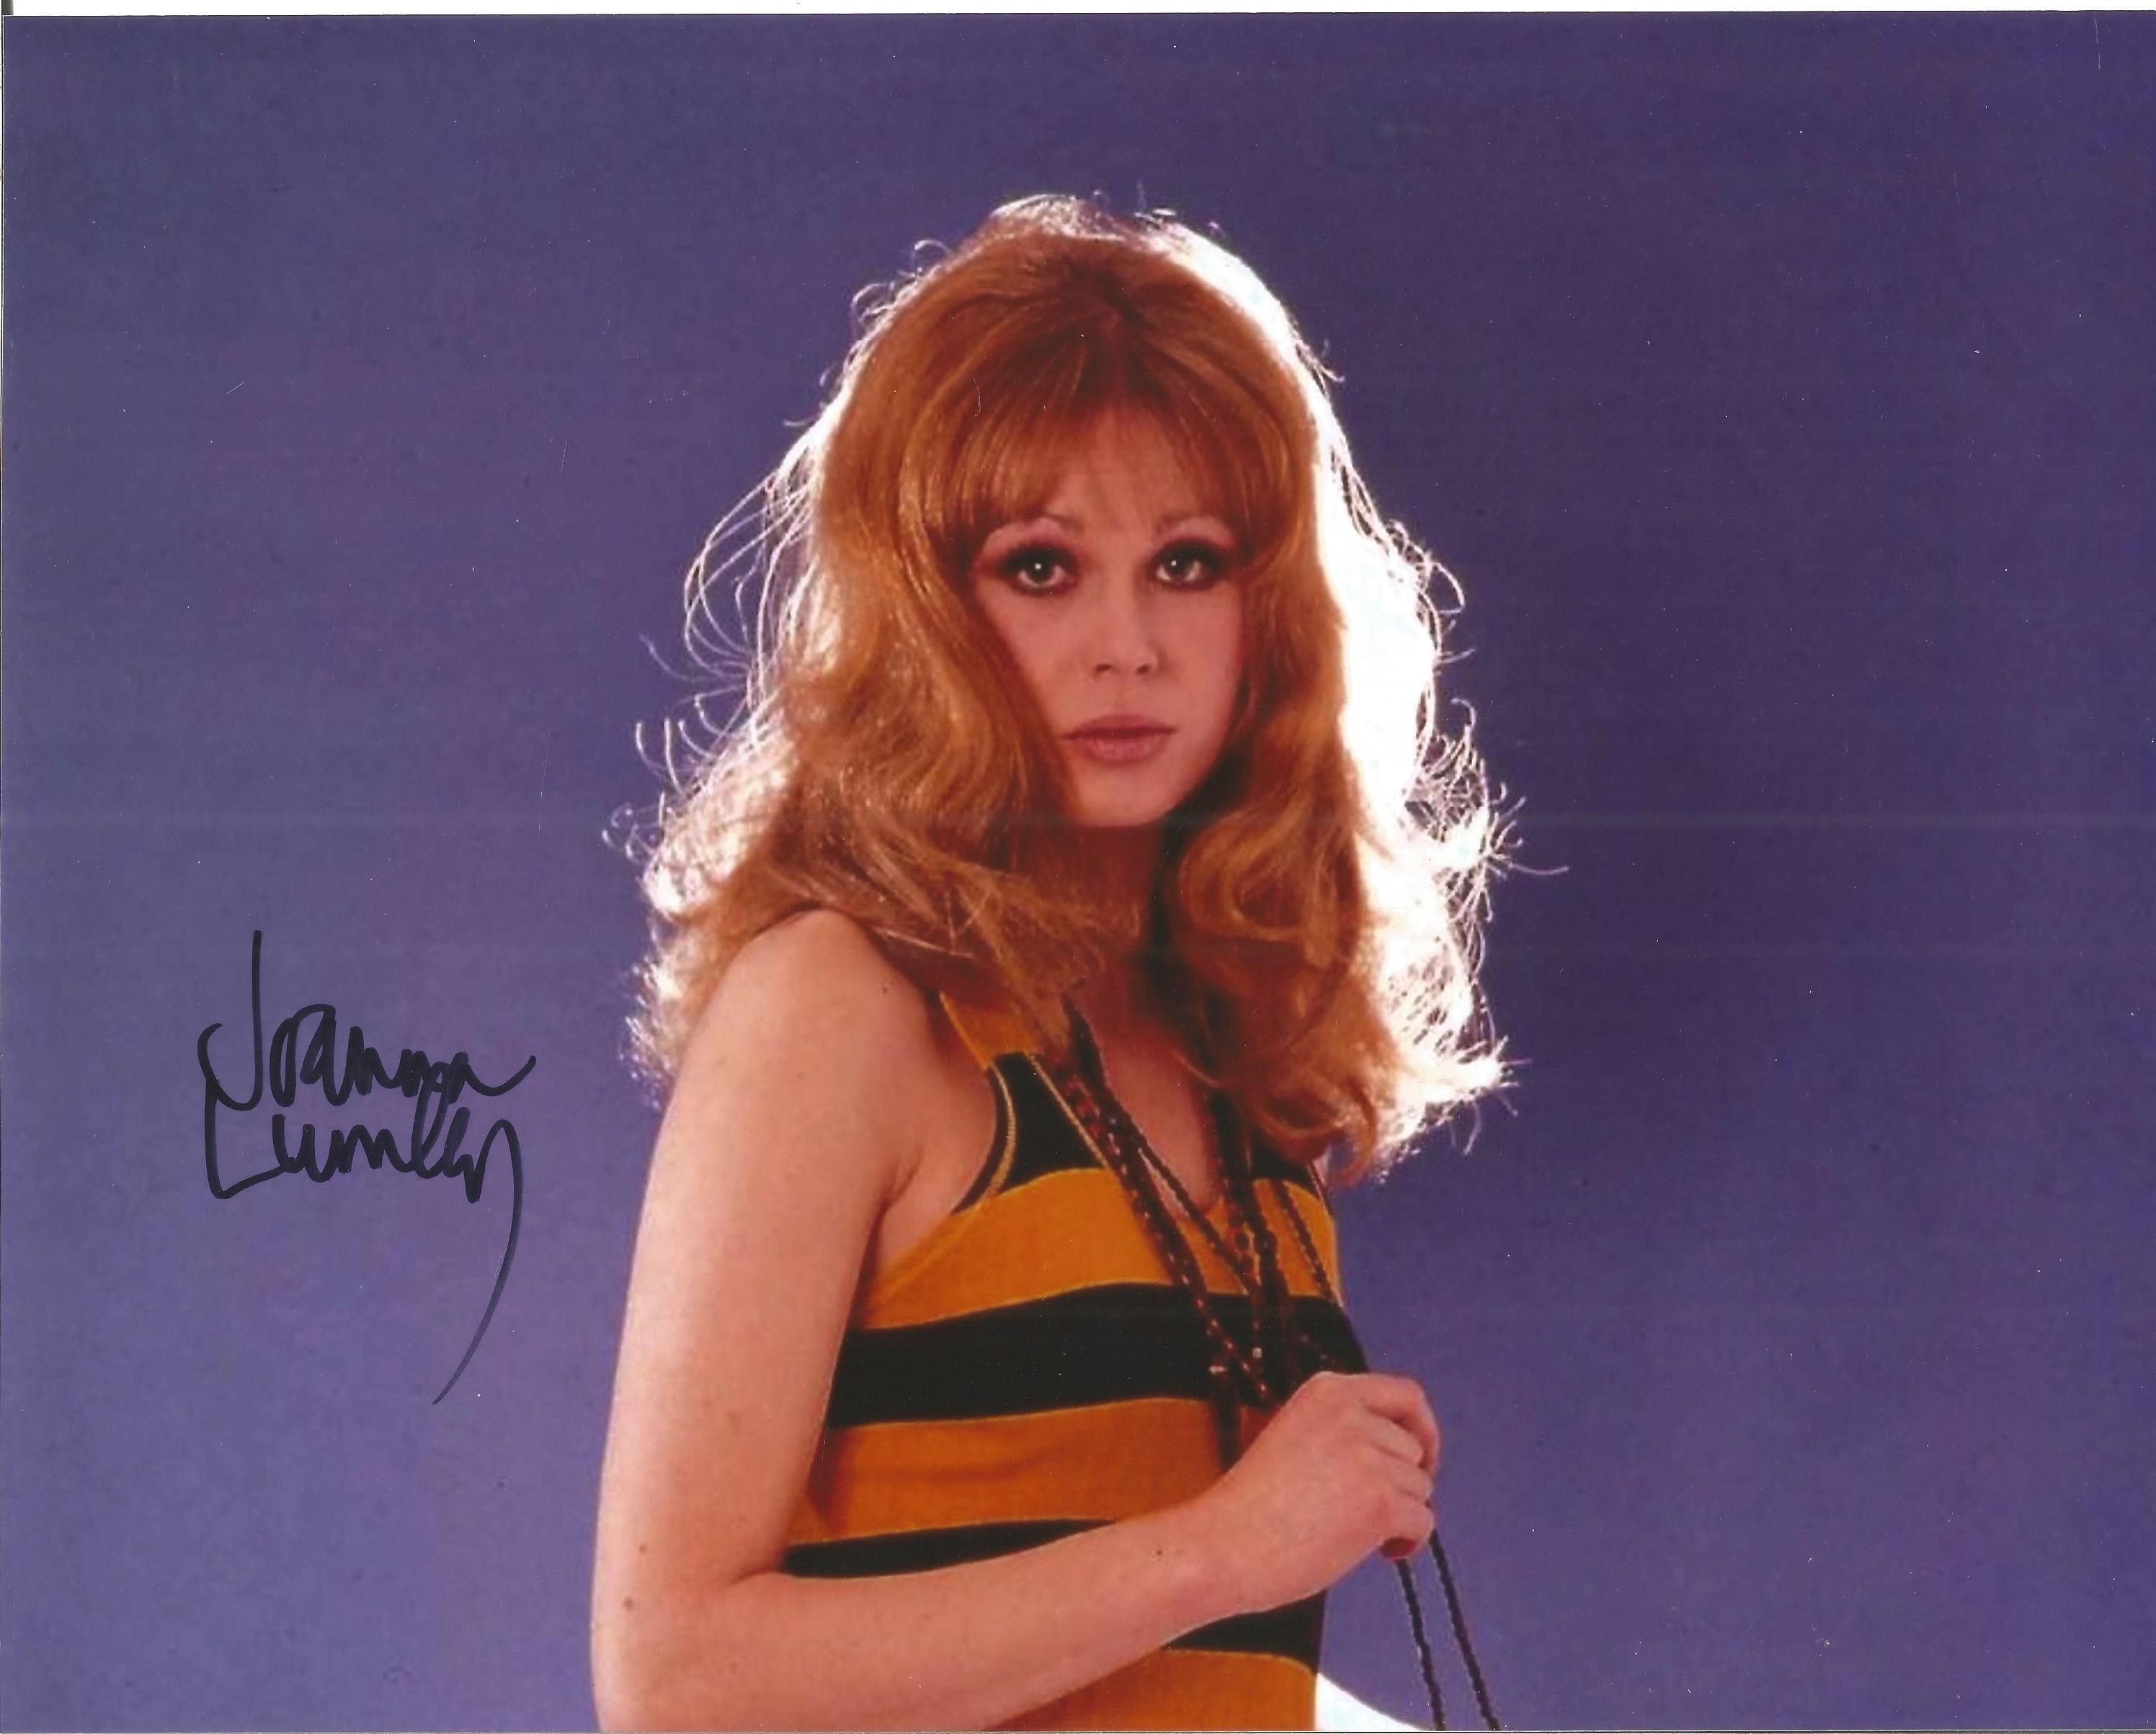 Joanna Lumley signed 10x8 colour image. Joanna is well known for her roles as a British Actress on